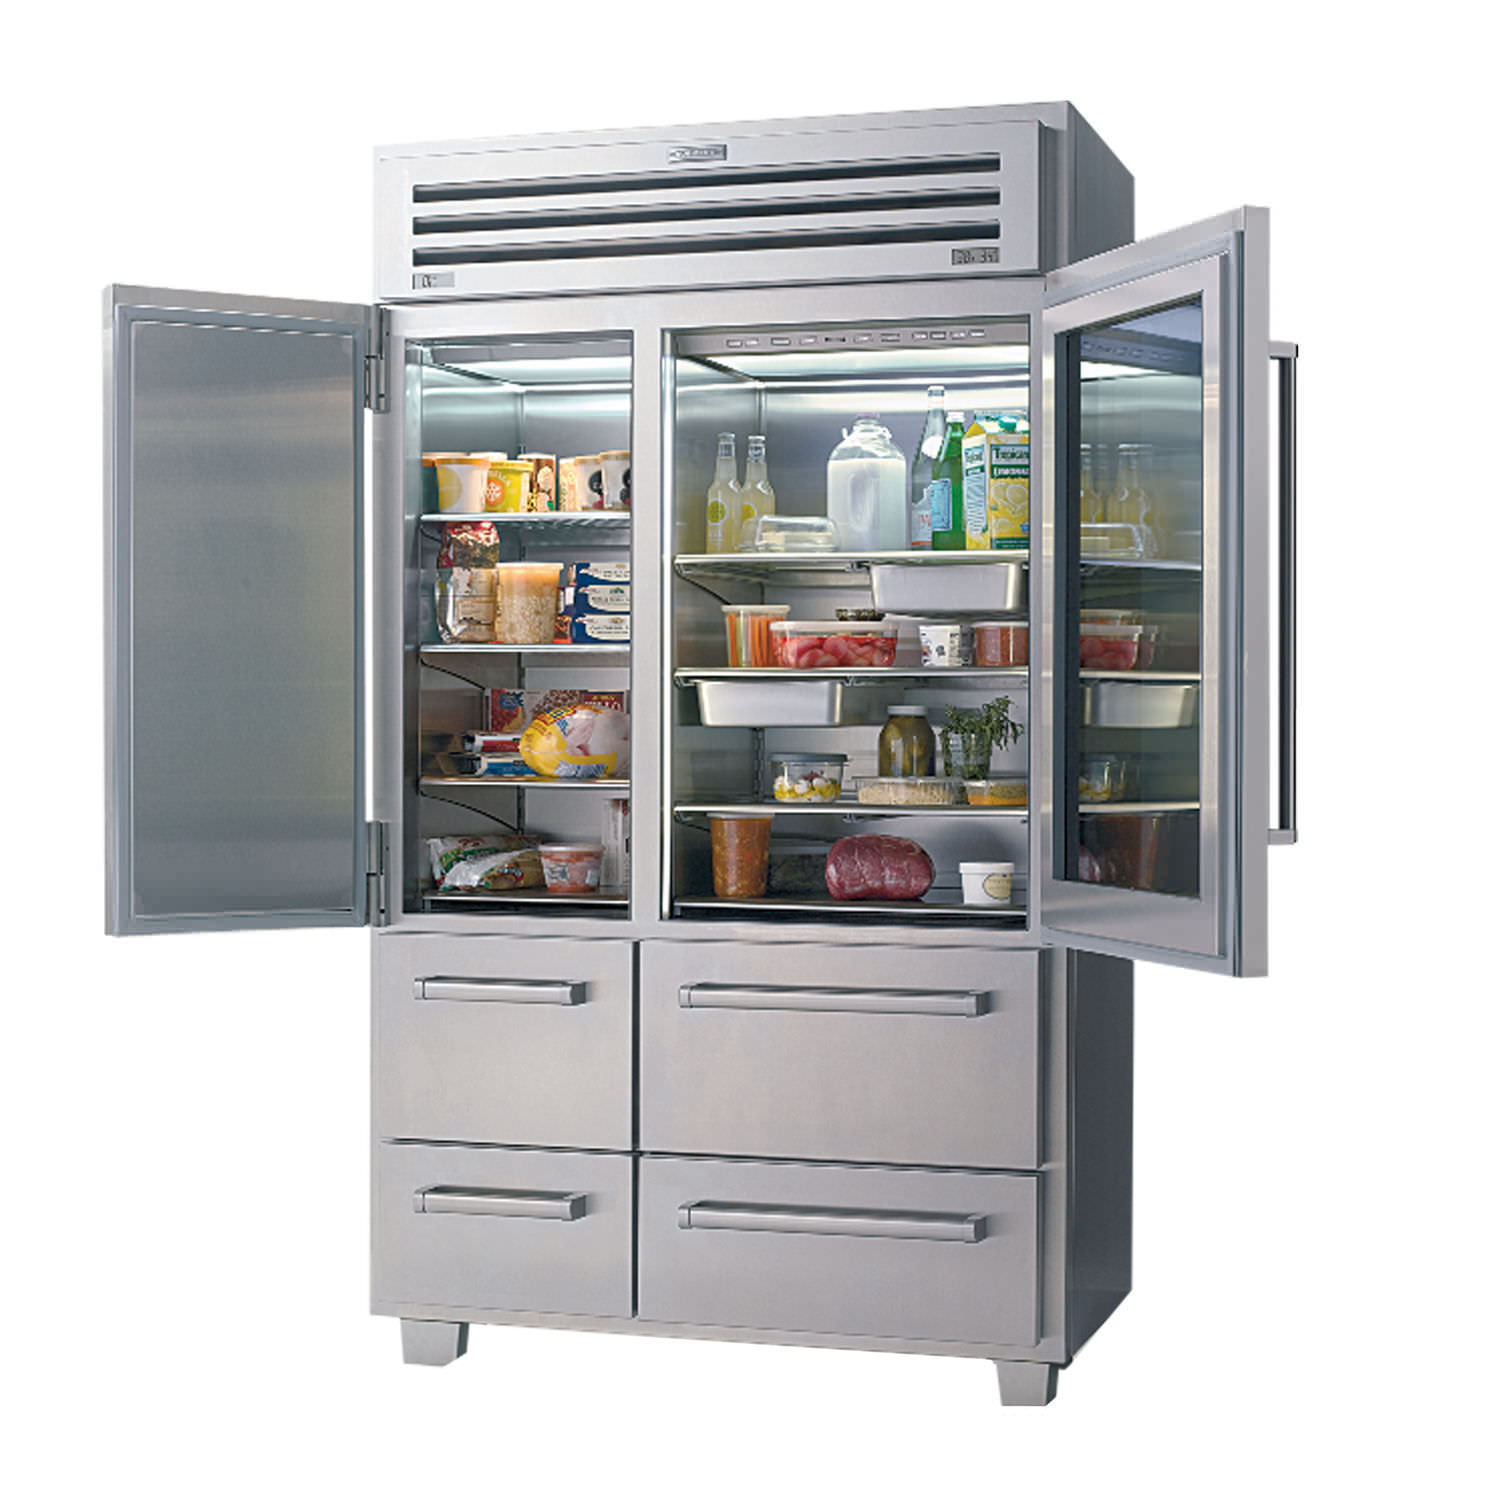 refrigerator of drawer single interesting freezer drawers fresh in undercounter ideas